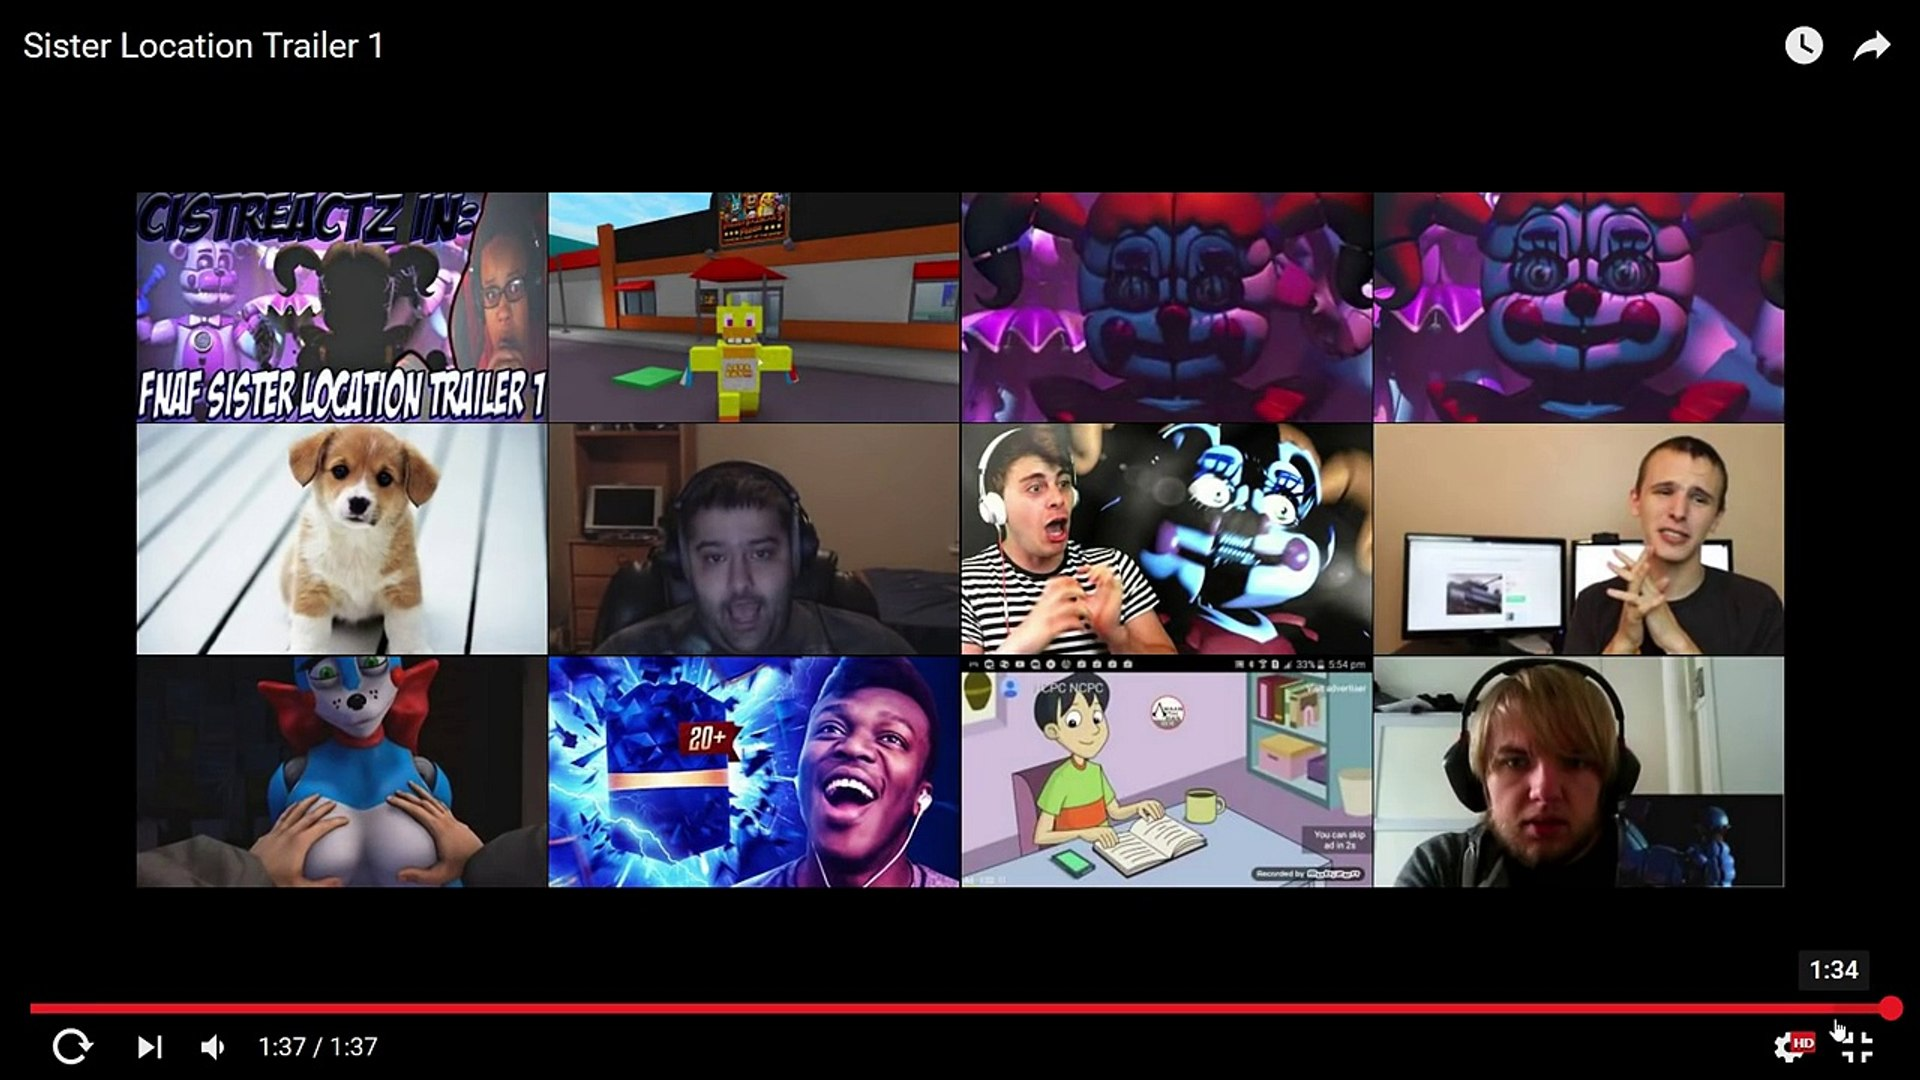 FNAF Sister Location Trailer 1 - FULL TRAILER REACTION/ BREAKDOWN! (FNAF GAMEPLAY TRAILER)